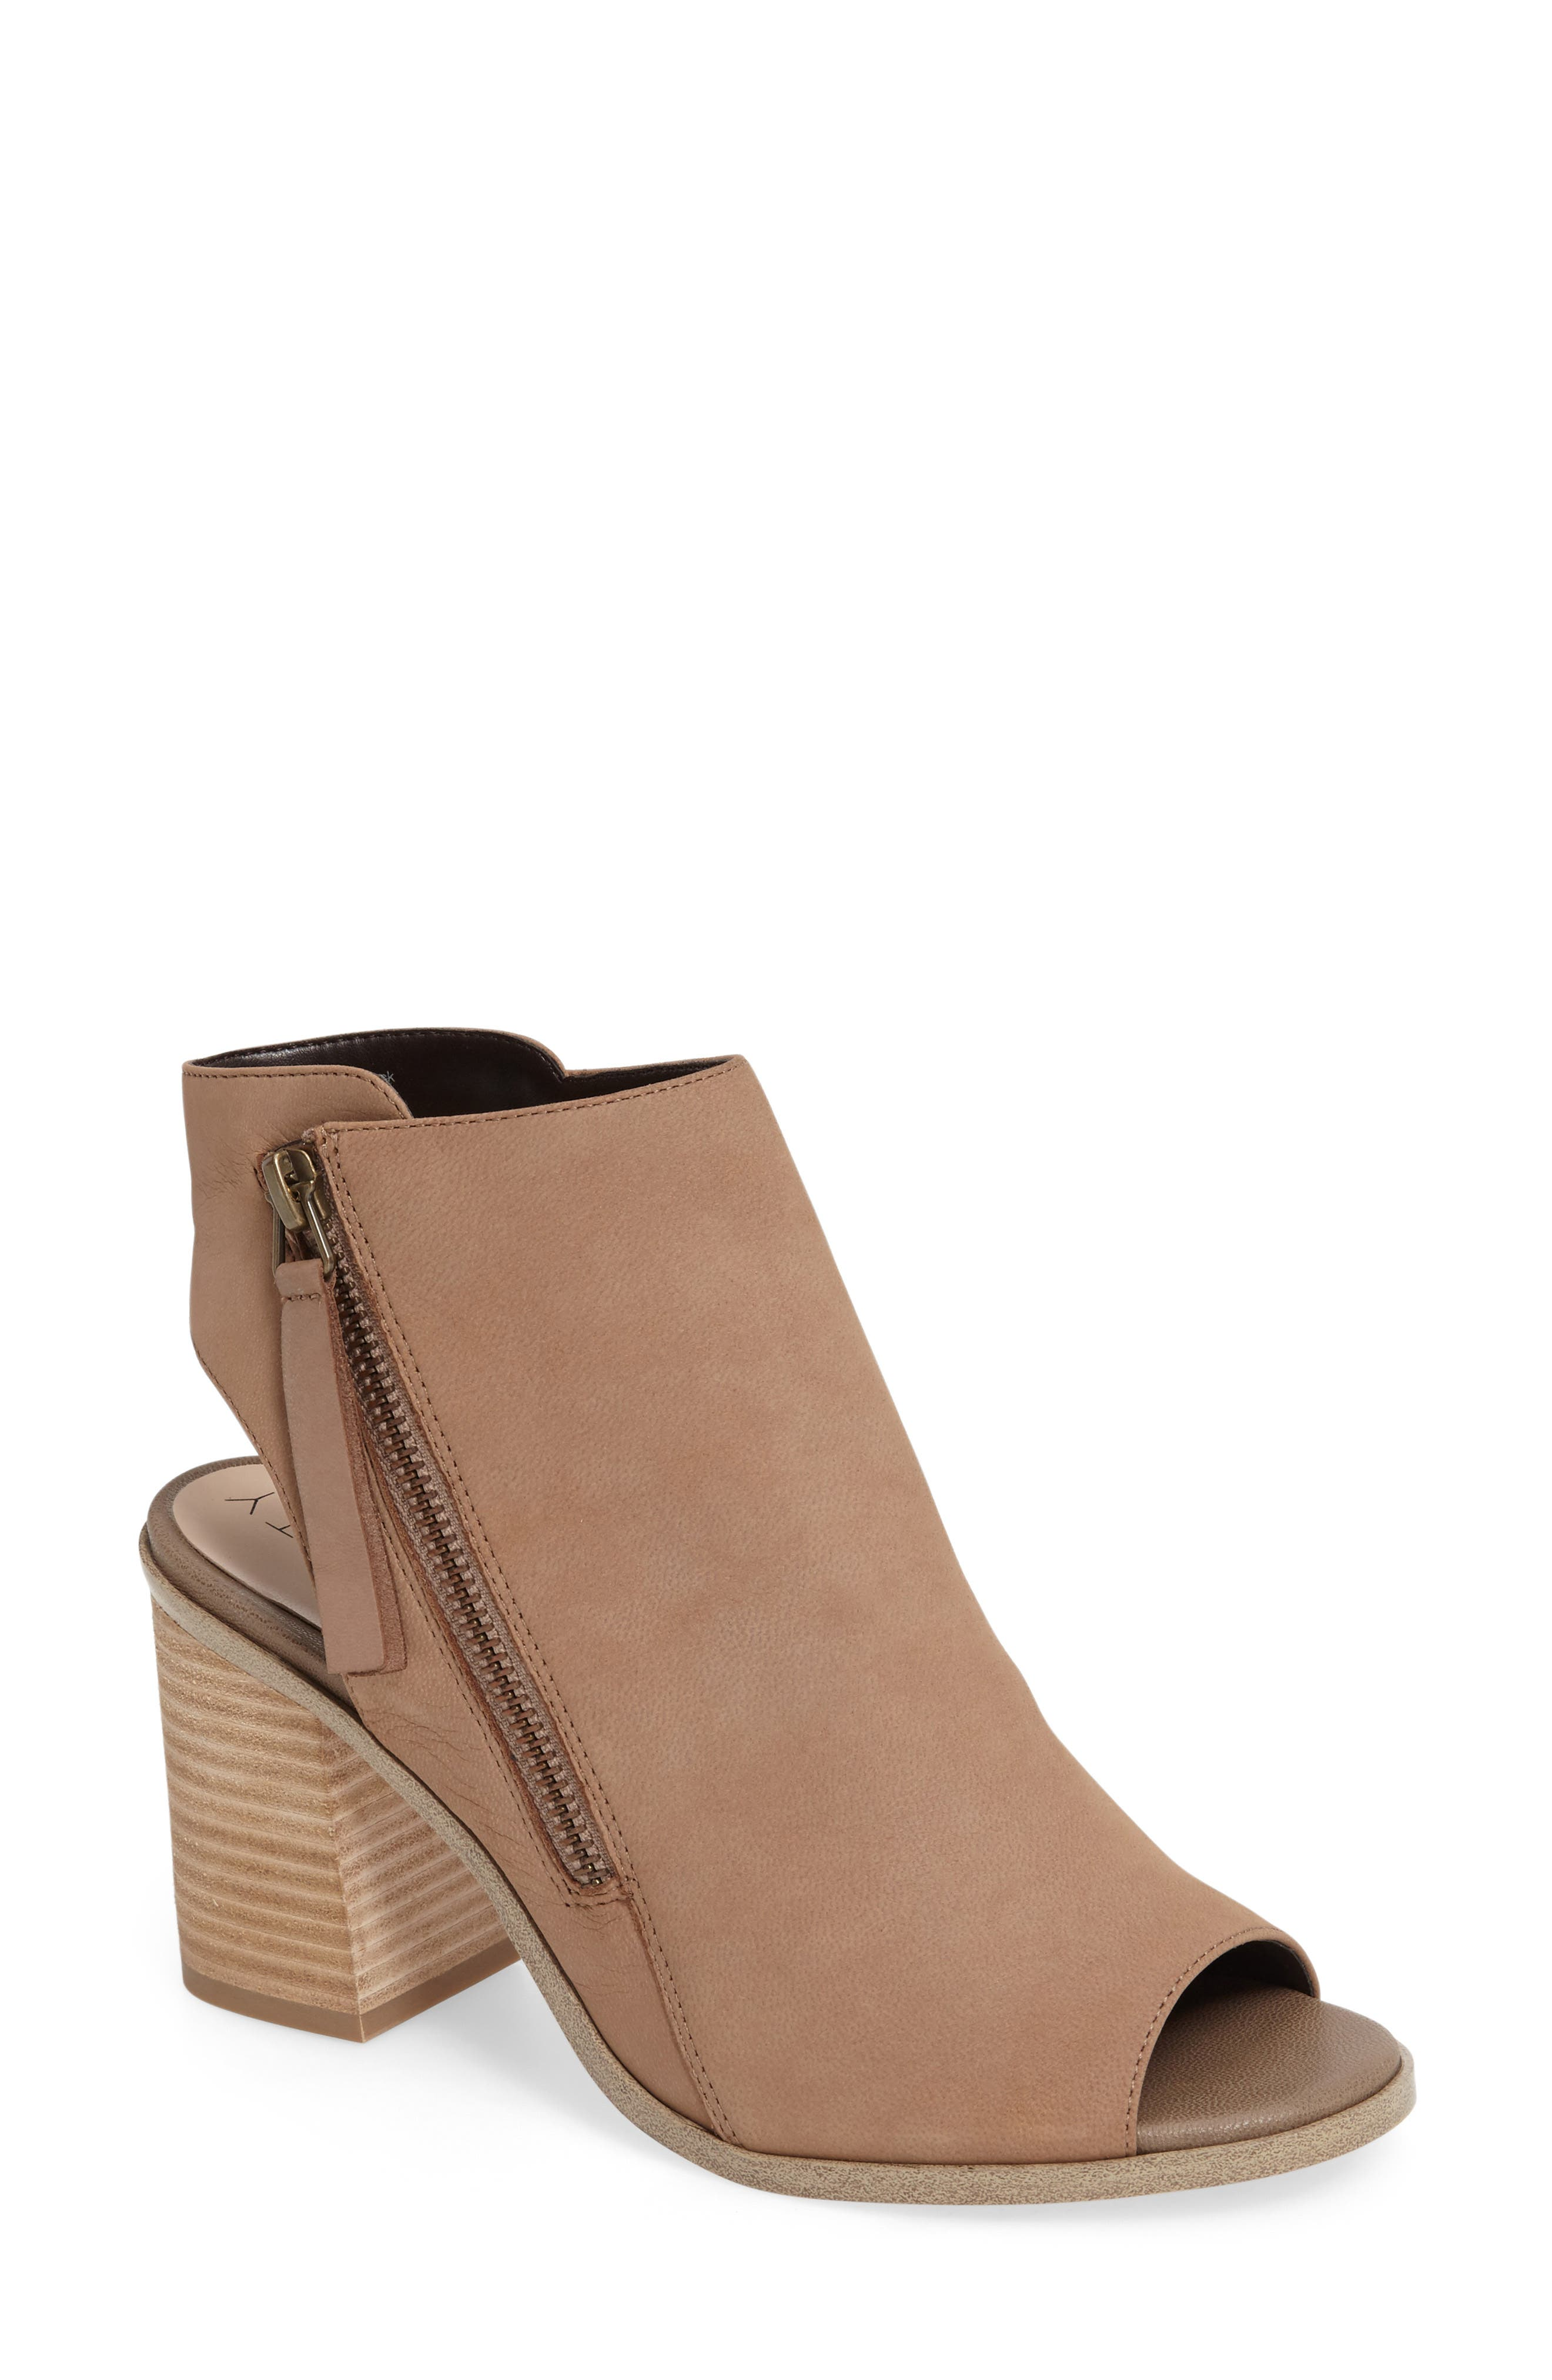 Main Image - Sole Society Arizona Block Heel Peep-Toe Bootie (Women)